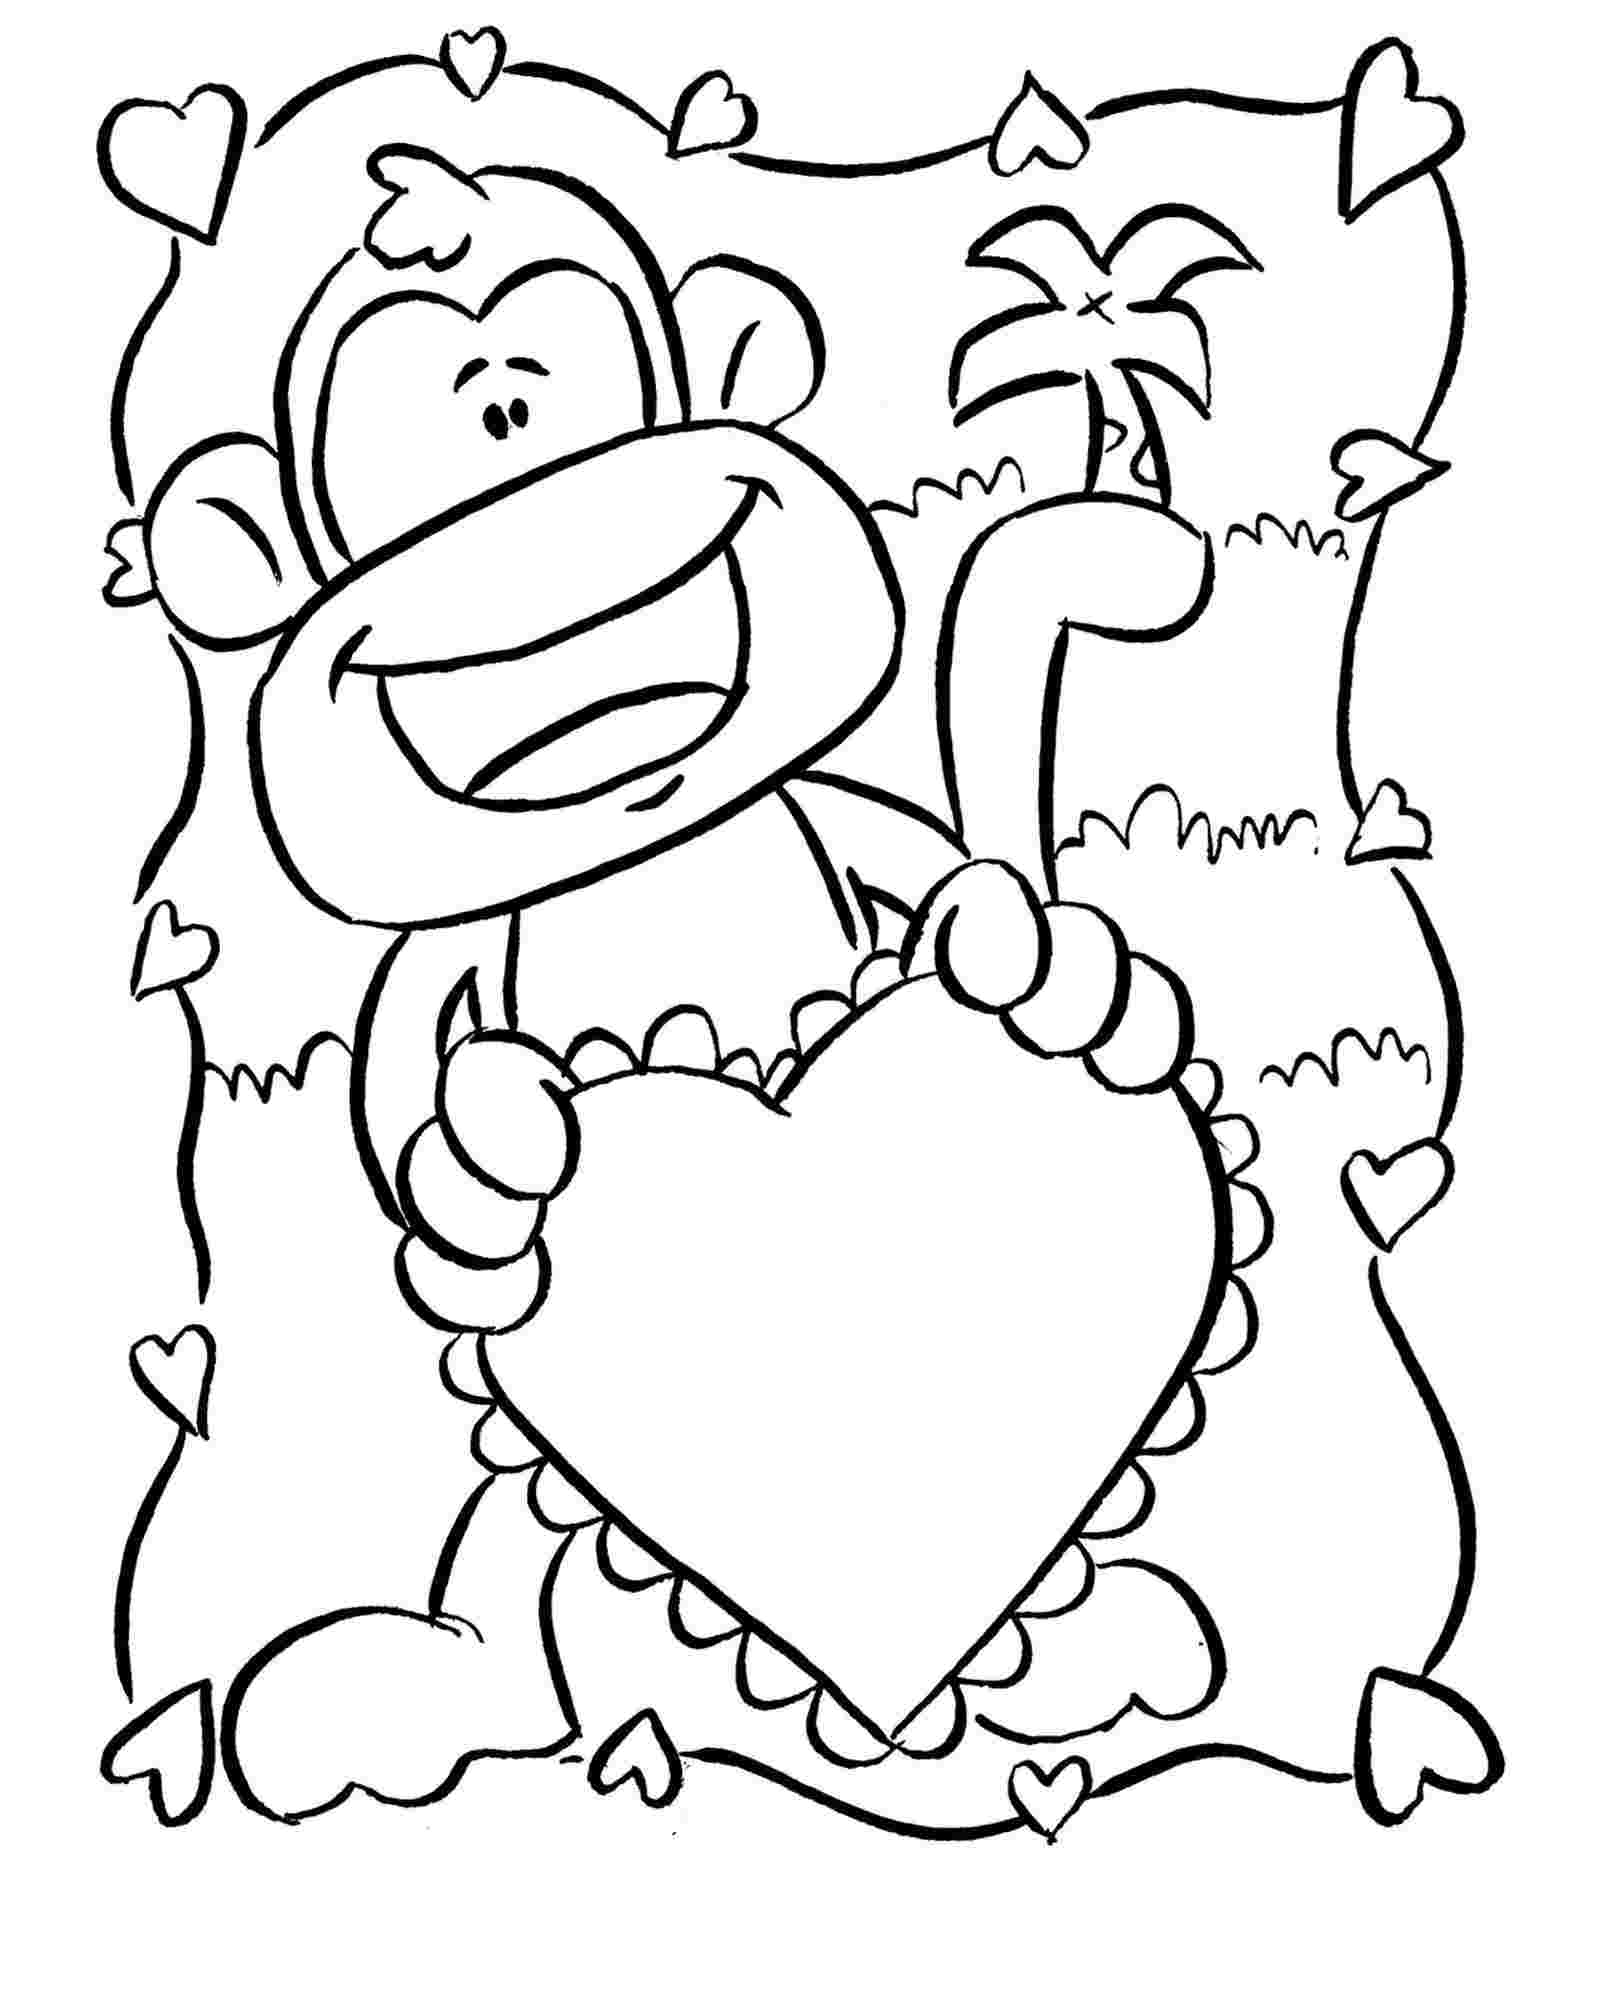 coloring pages of monkey cartoon monkey drawing at getdrawings free download monkey of pages coloring